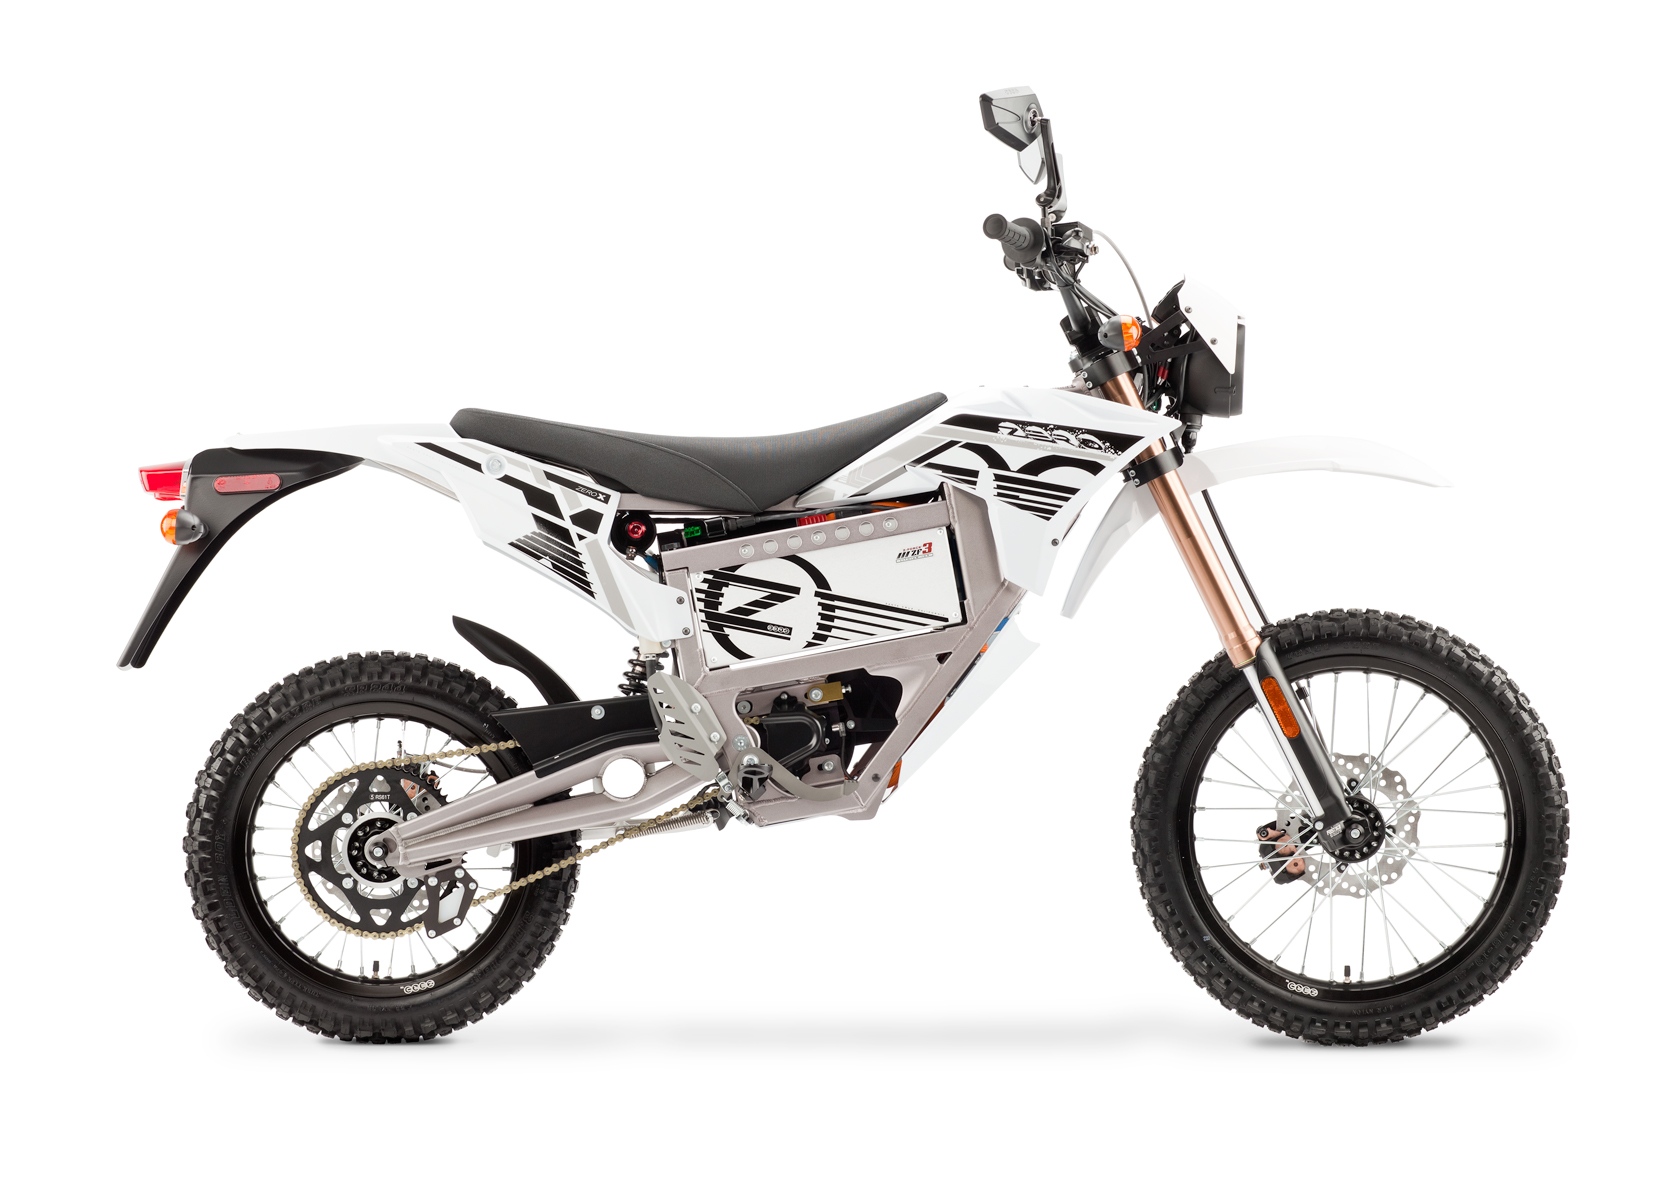 2012 Zero X Electric Motorcycle: Profile Right, White Background